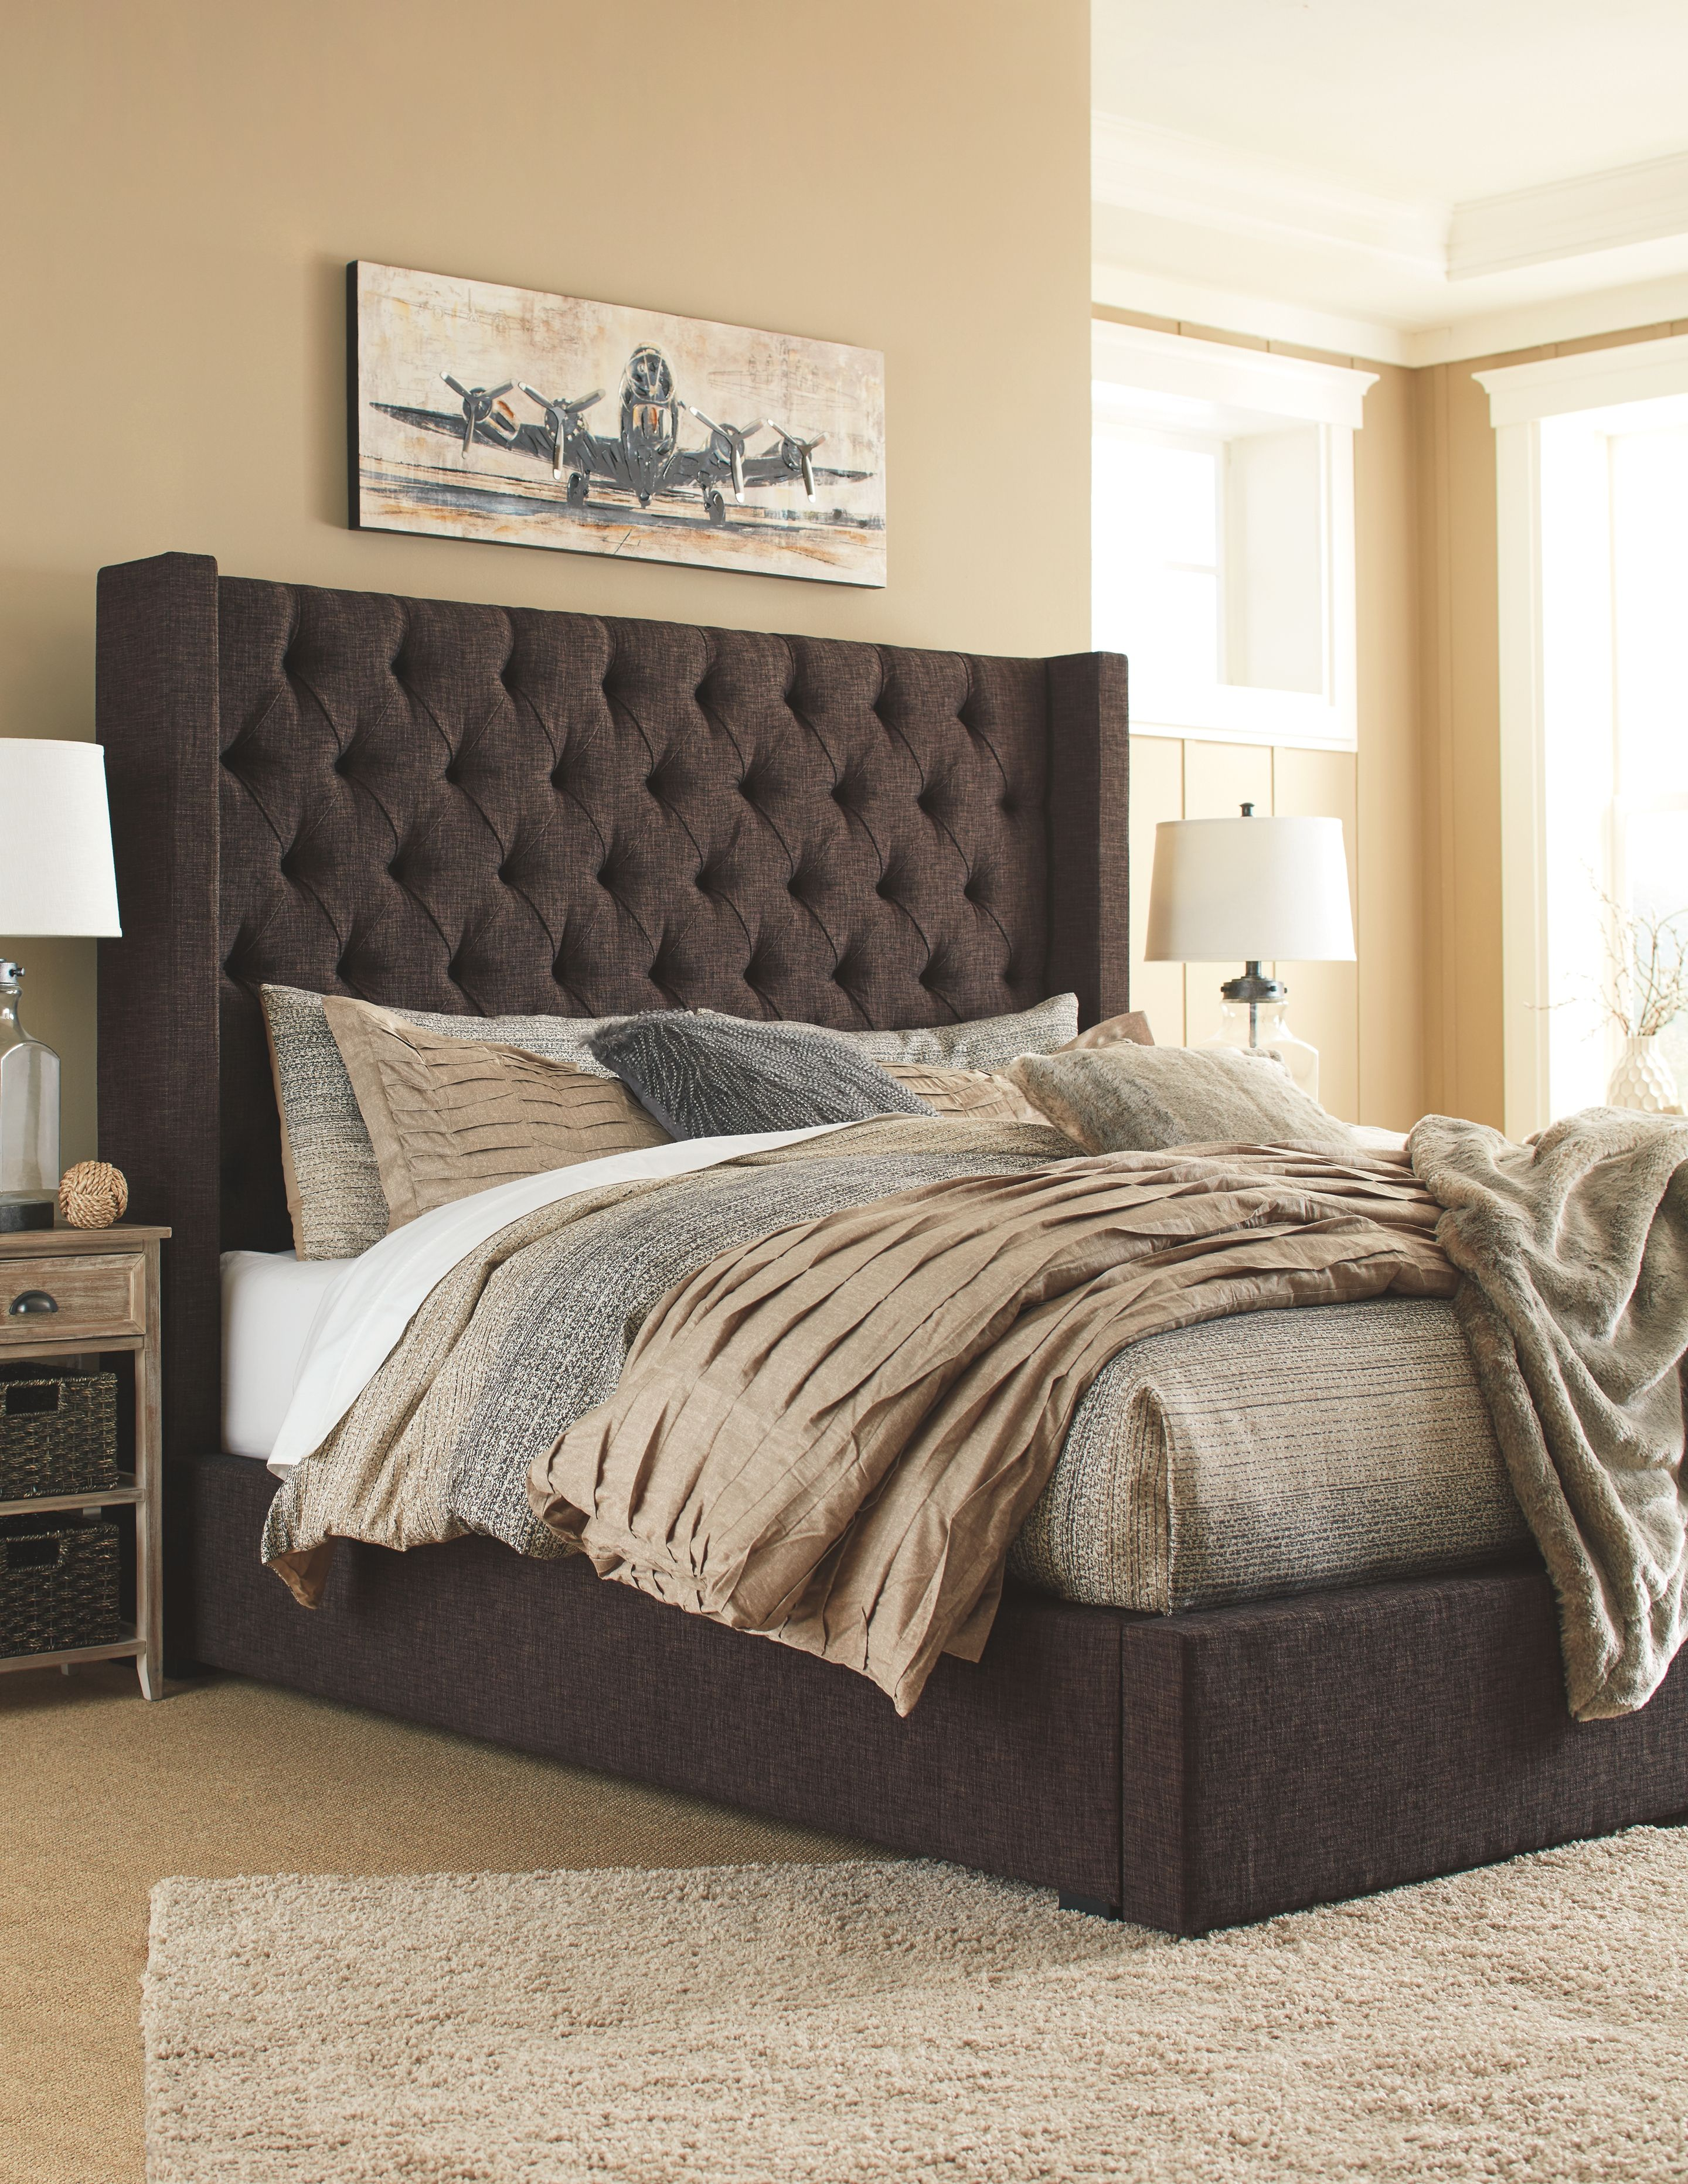 sale retailer 665e8 645e1 Norrister King Upholstered Panel Bed, Dark Brown | Products ...